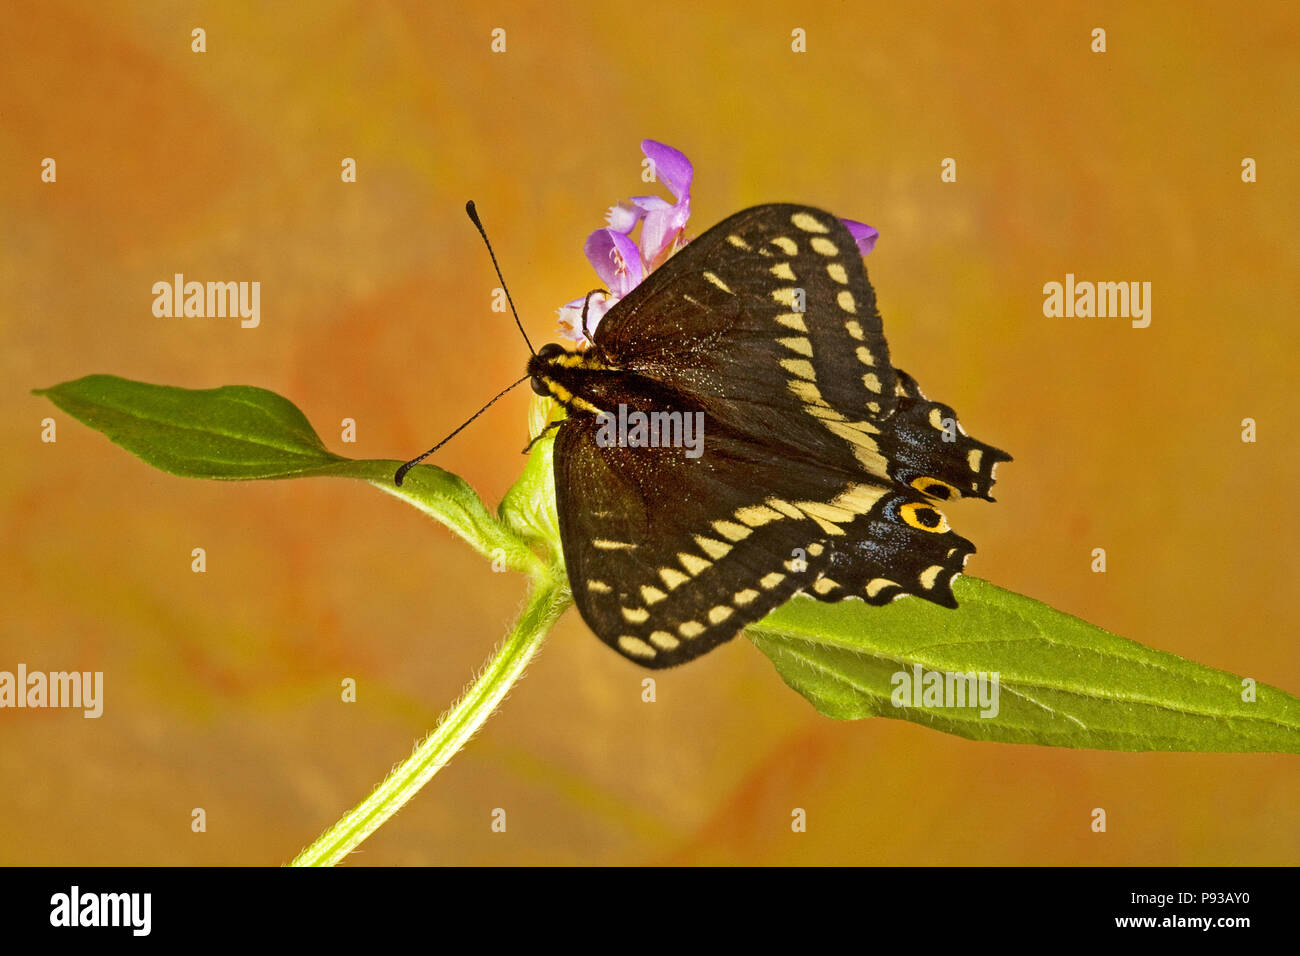 Dorsal view of an Indra Swallowtail butterfly, Papilio indra, on a wildflower in the eastern Cascade Mountains of central Oregon. - Stock Image